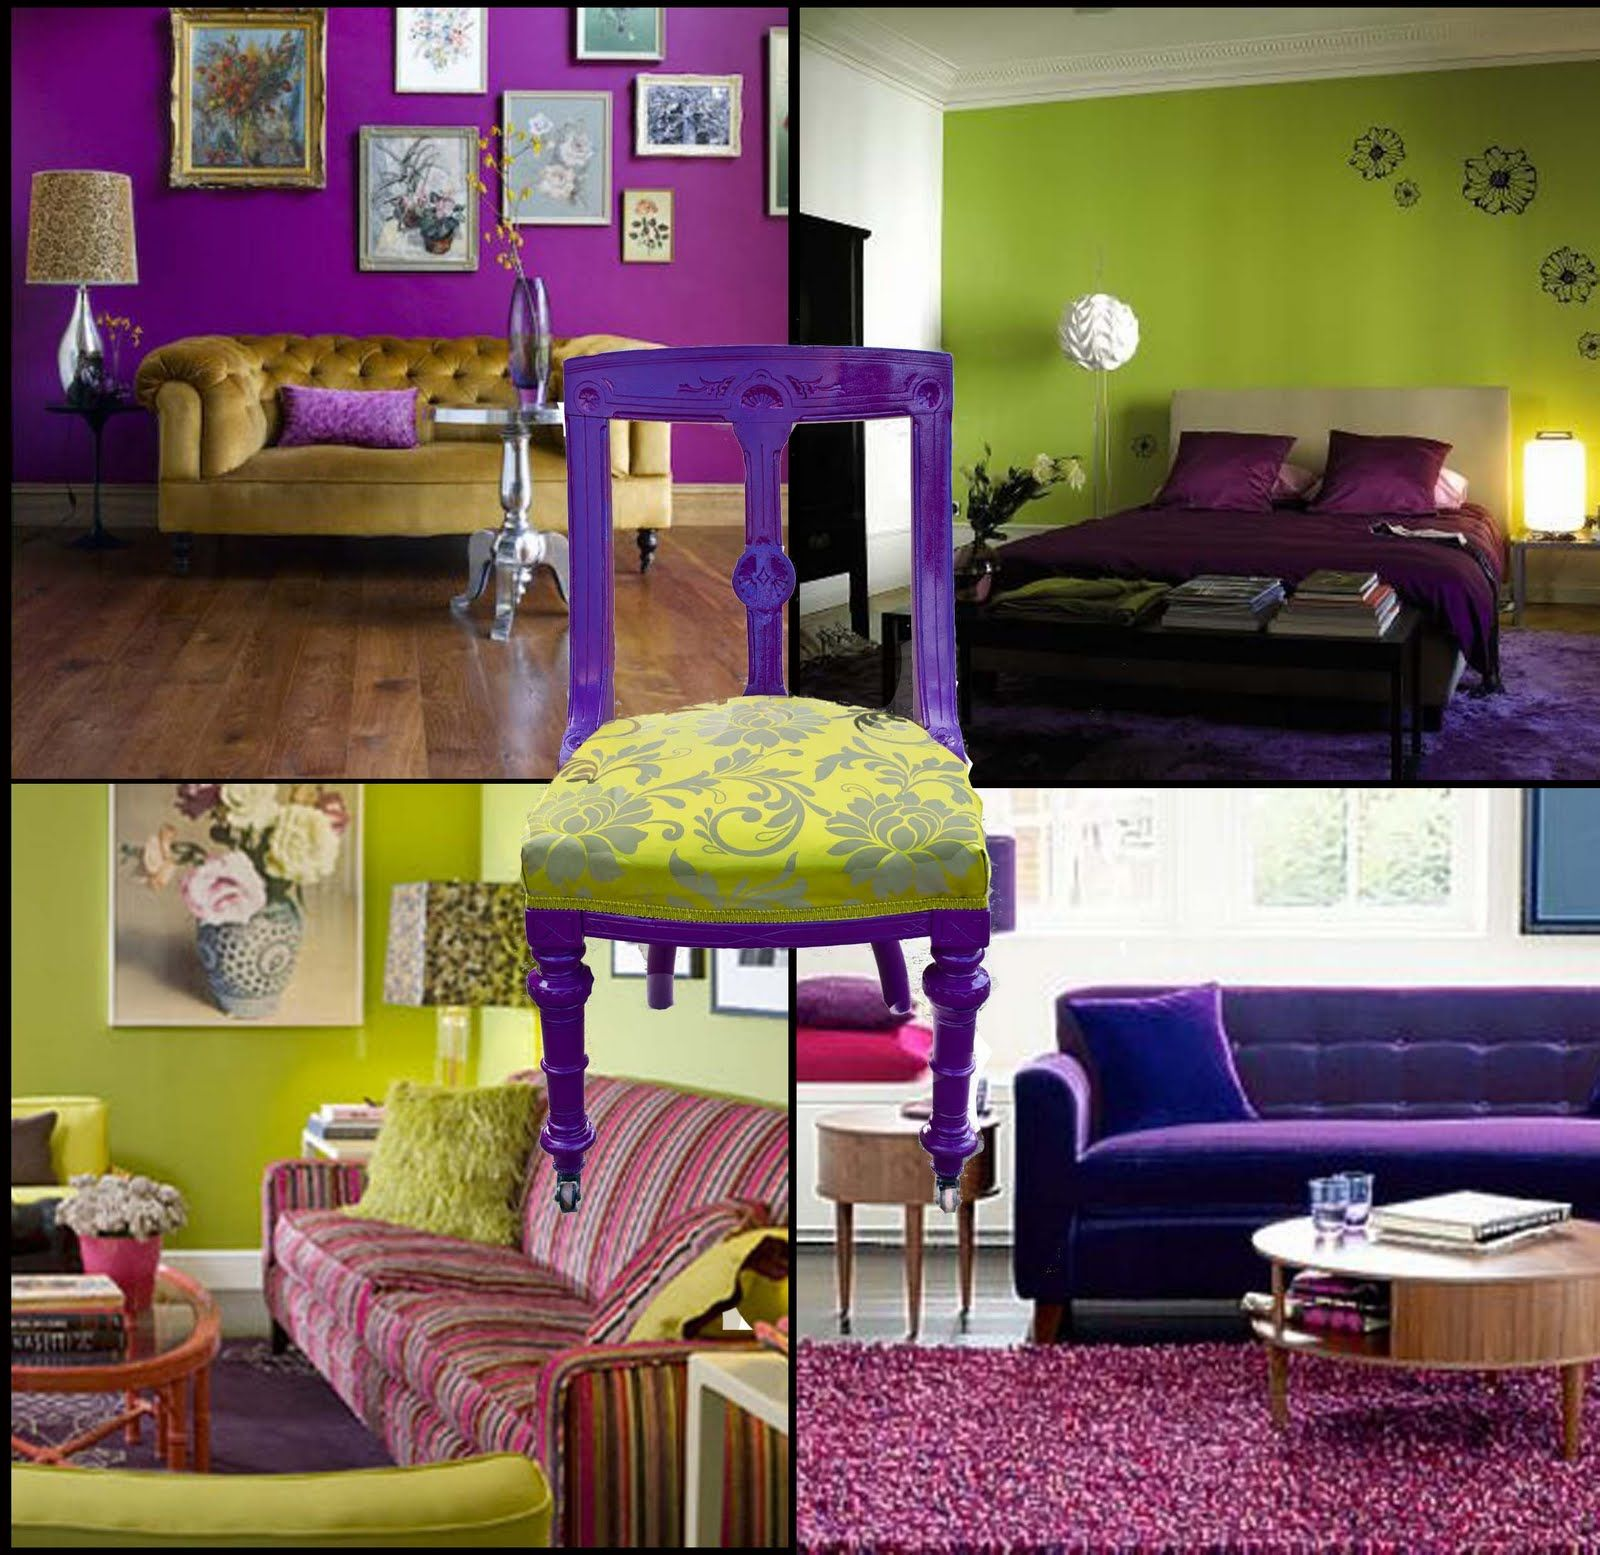 Very Cool Lime Green Purple Room Ideas!